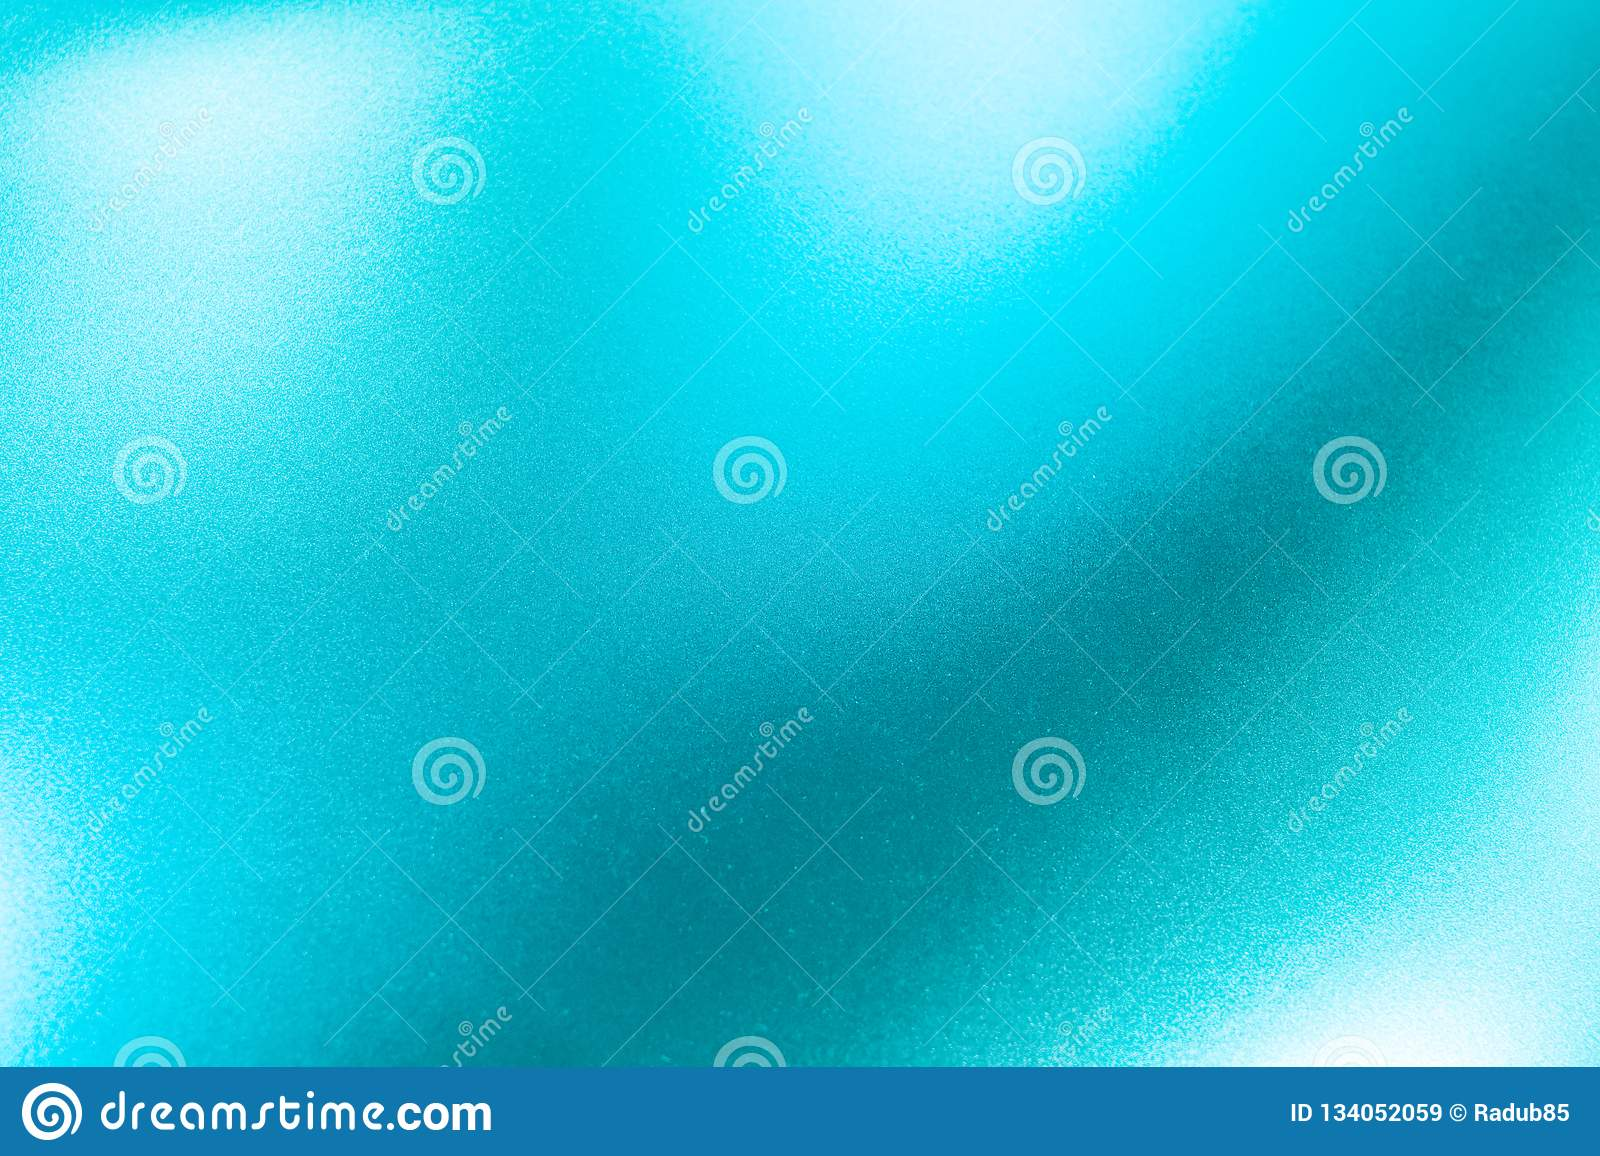 Turquoise Metal Texture Background